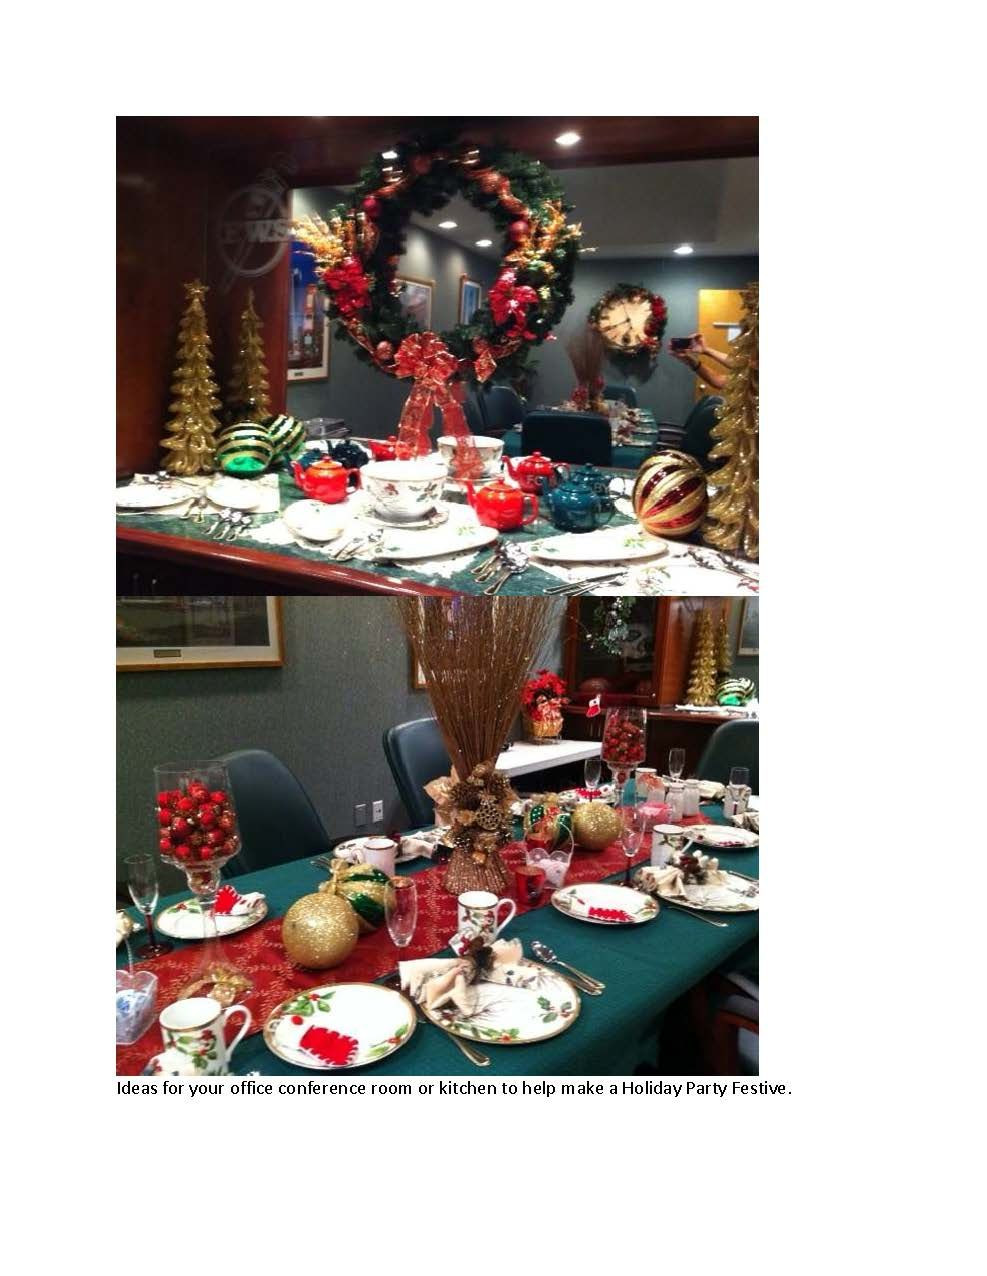 Ideas For Office Christmas Party  Some ideas to turn your office conference room or kitchen